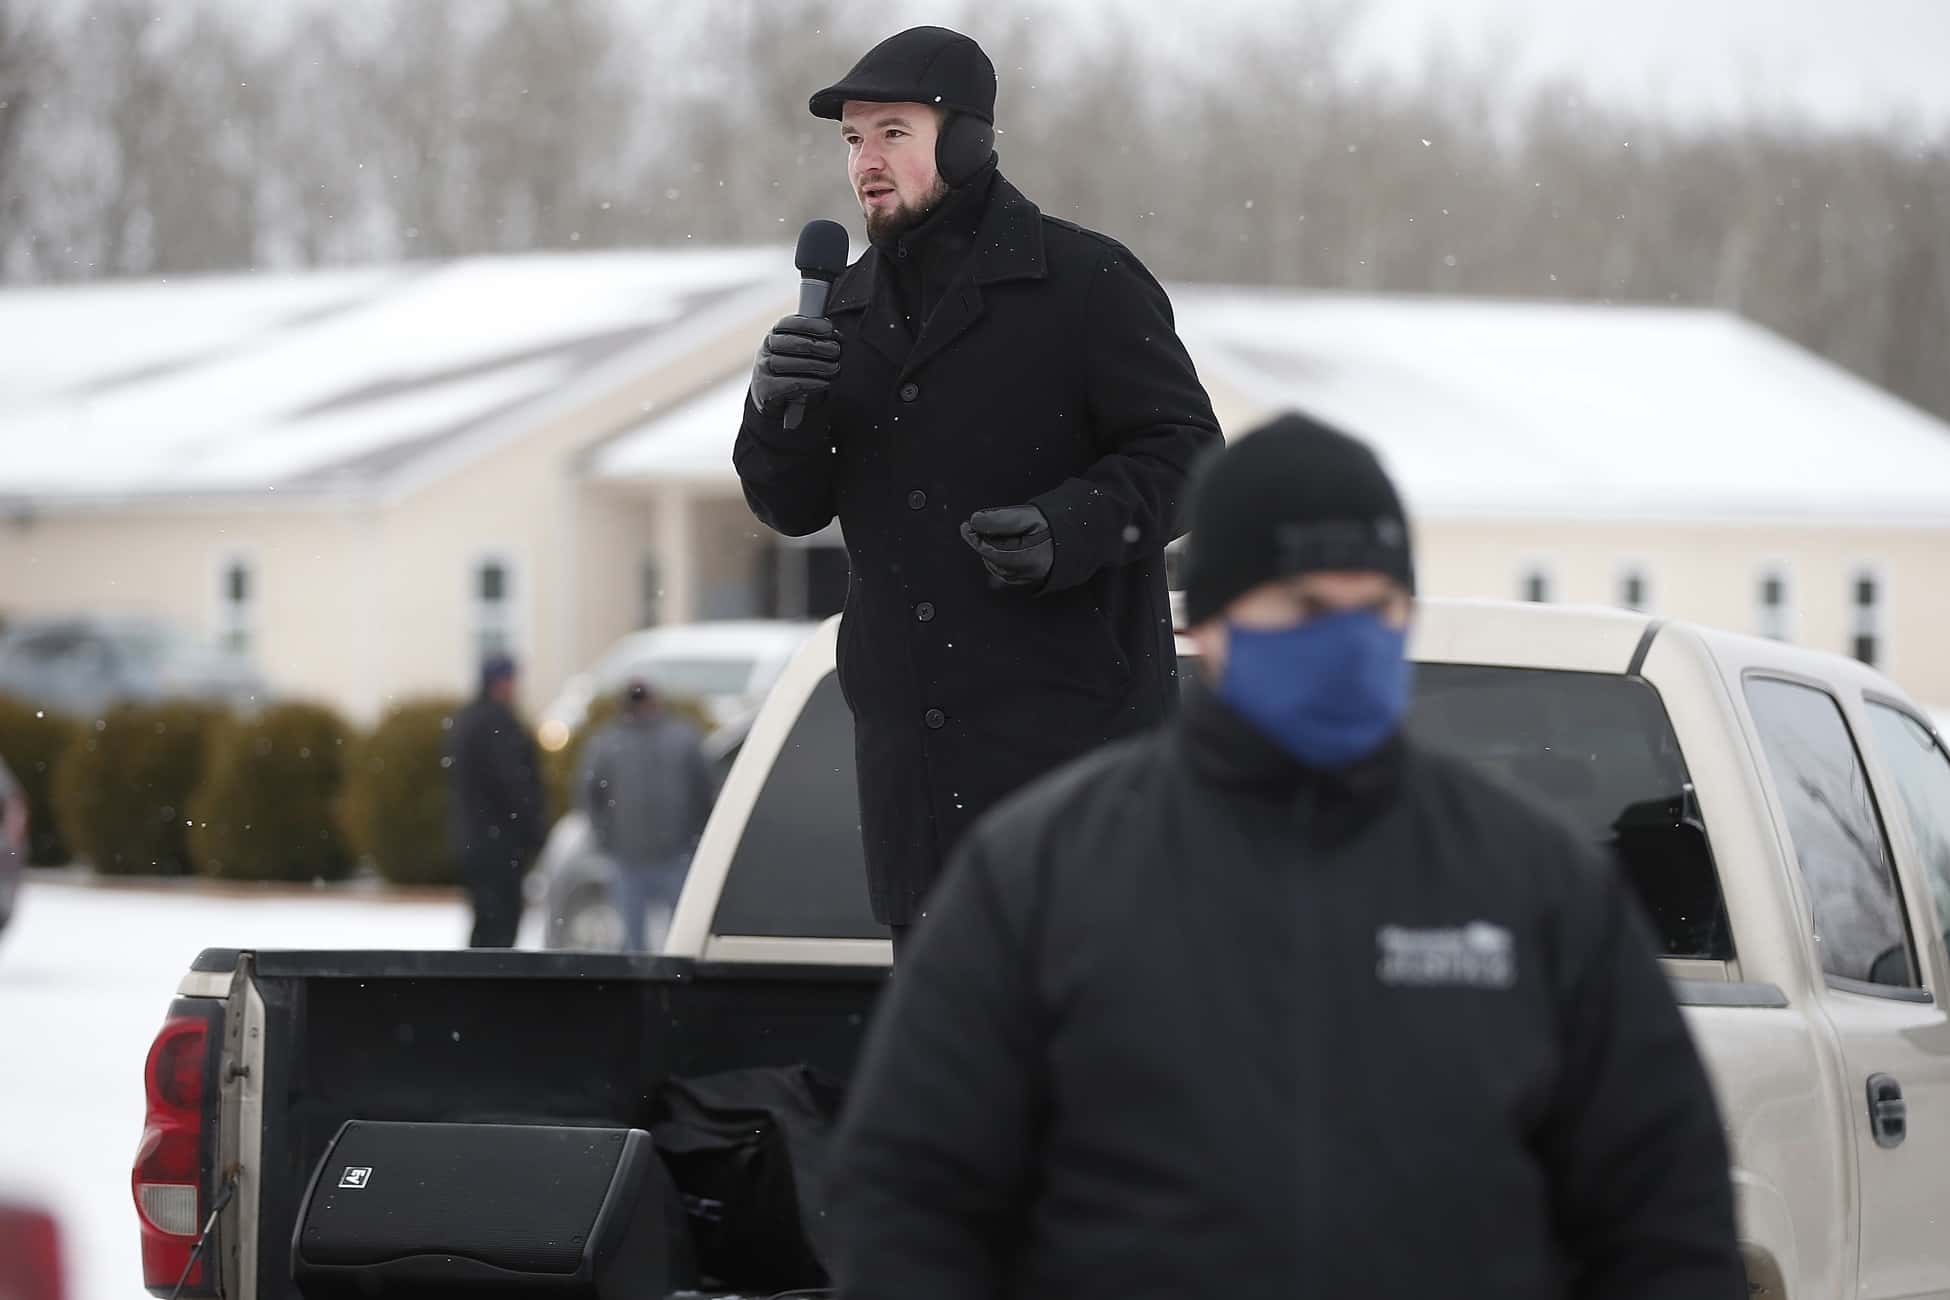 Tobias Tissen, minister at the Church of God Restoration, spoke from the back of a pickup truck as RCMP officers and Manitoba Justice officials blocked the entrance to The Church of God Restoration, just south of Steinbach on Sunday morning. Under the current public health restrictions, all faith-based gatherings must be held virtually. (John Woods / Winnipeg Free Press)